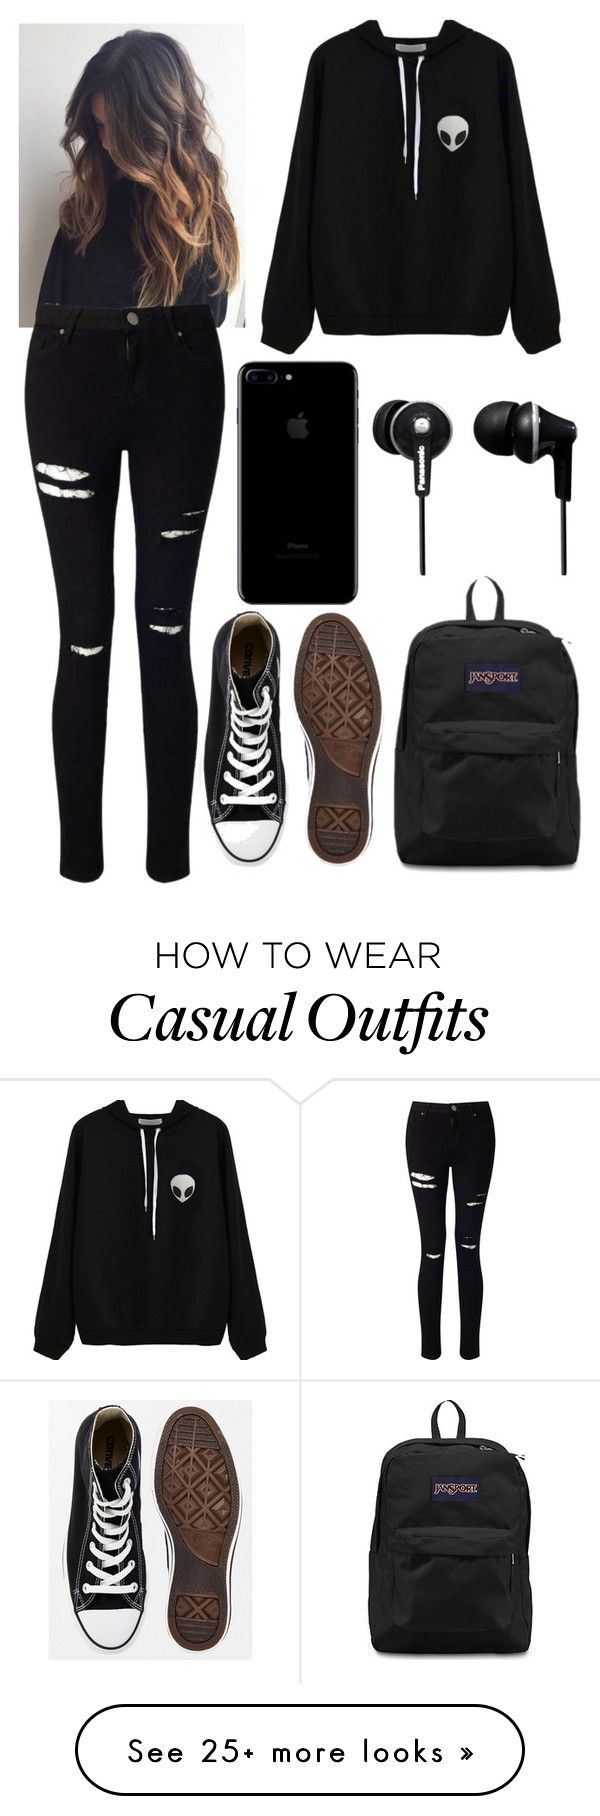 """Casual School"" by kellyaguilera on Polyvore featuring Converse, Miss Selfridge, JanSport, Panasonic, casual, school, black and emo"